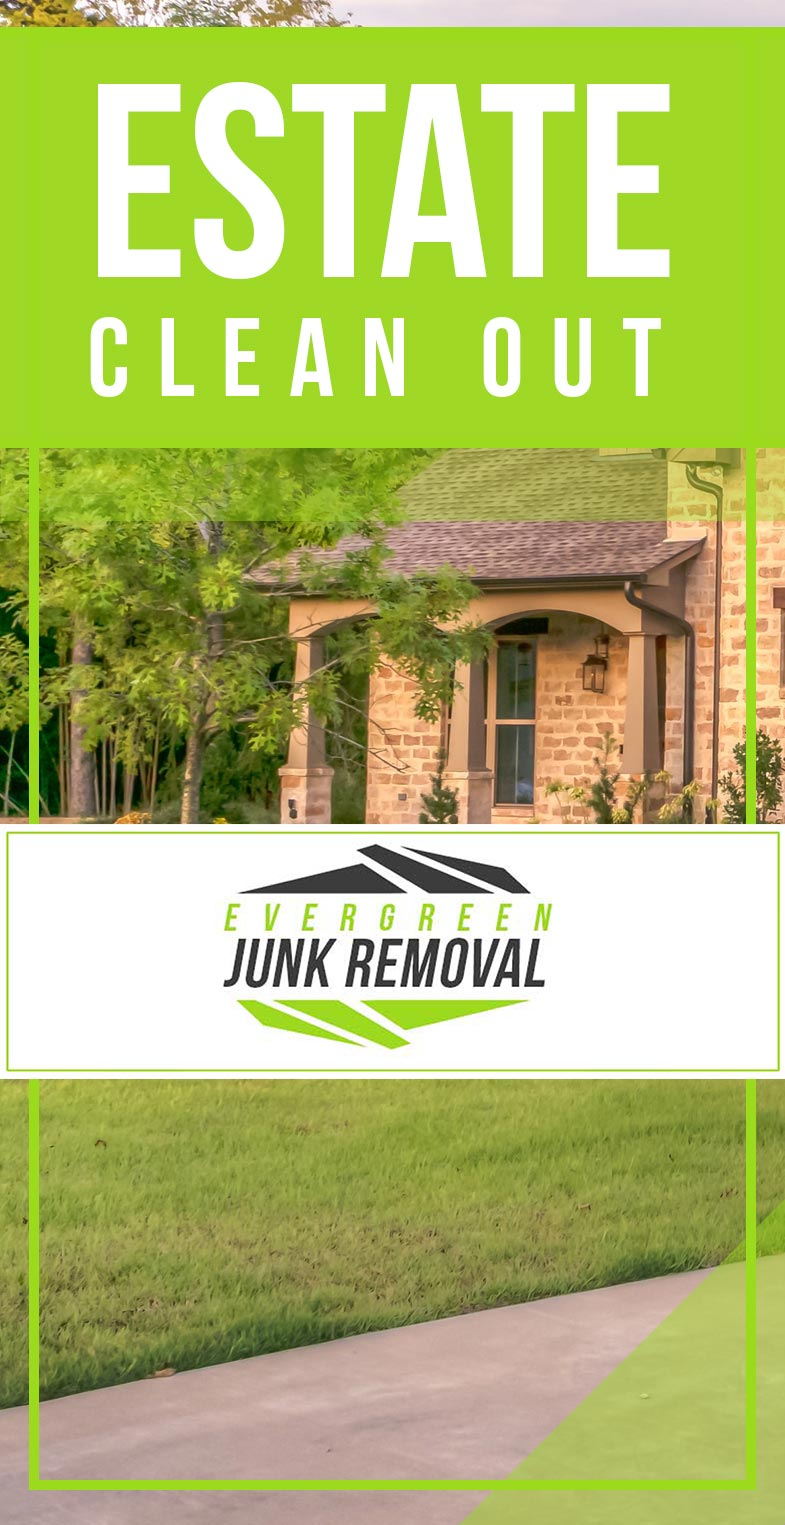 East Los Angeles Property Clean Out